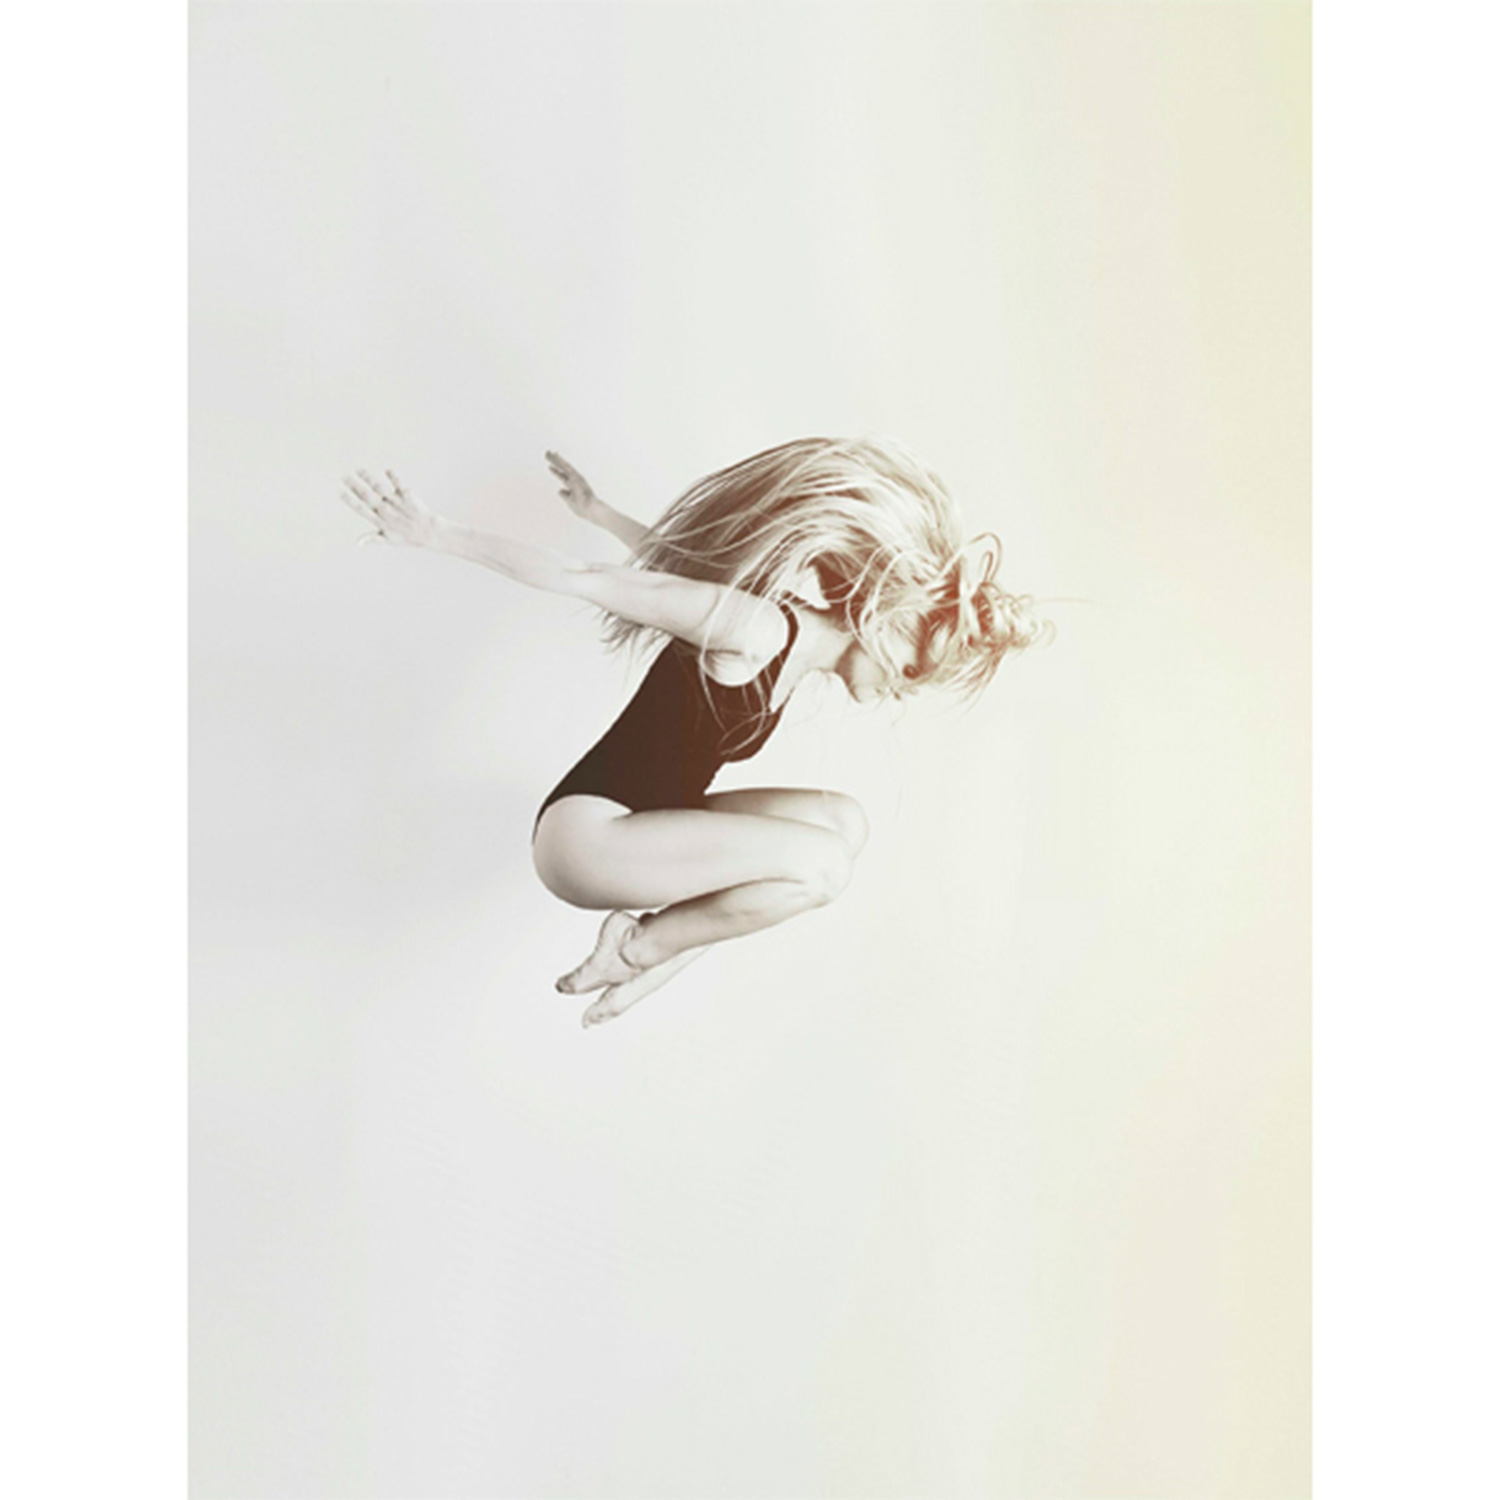 Ballerina on White poster, 50x70